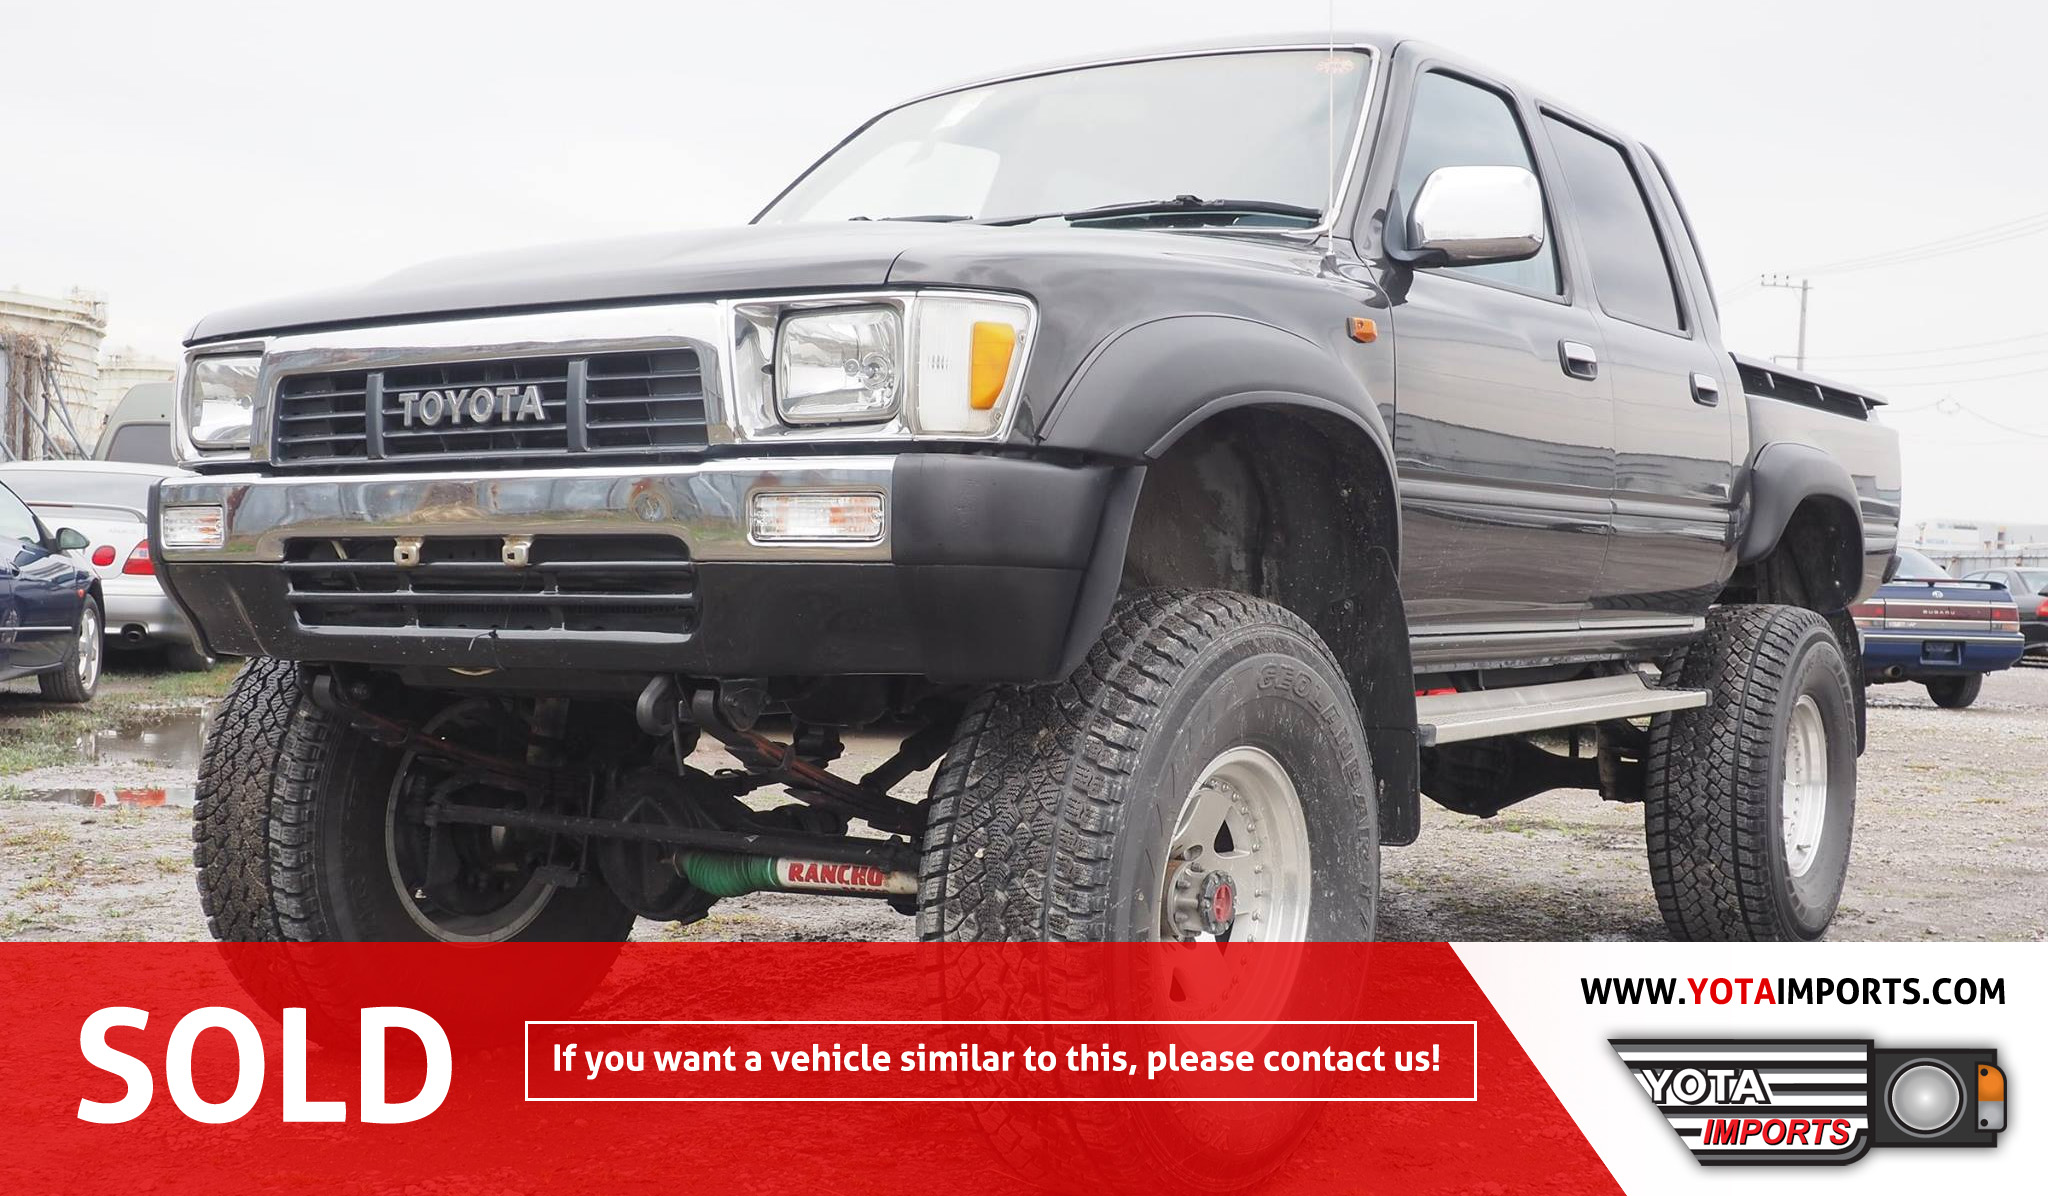 1989 toyota hilux double cab truck #02915dhl01 – yota imports